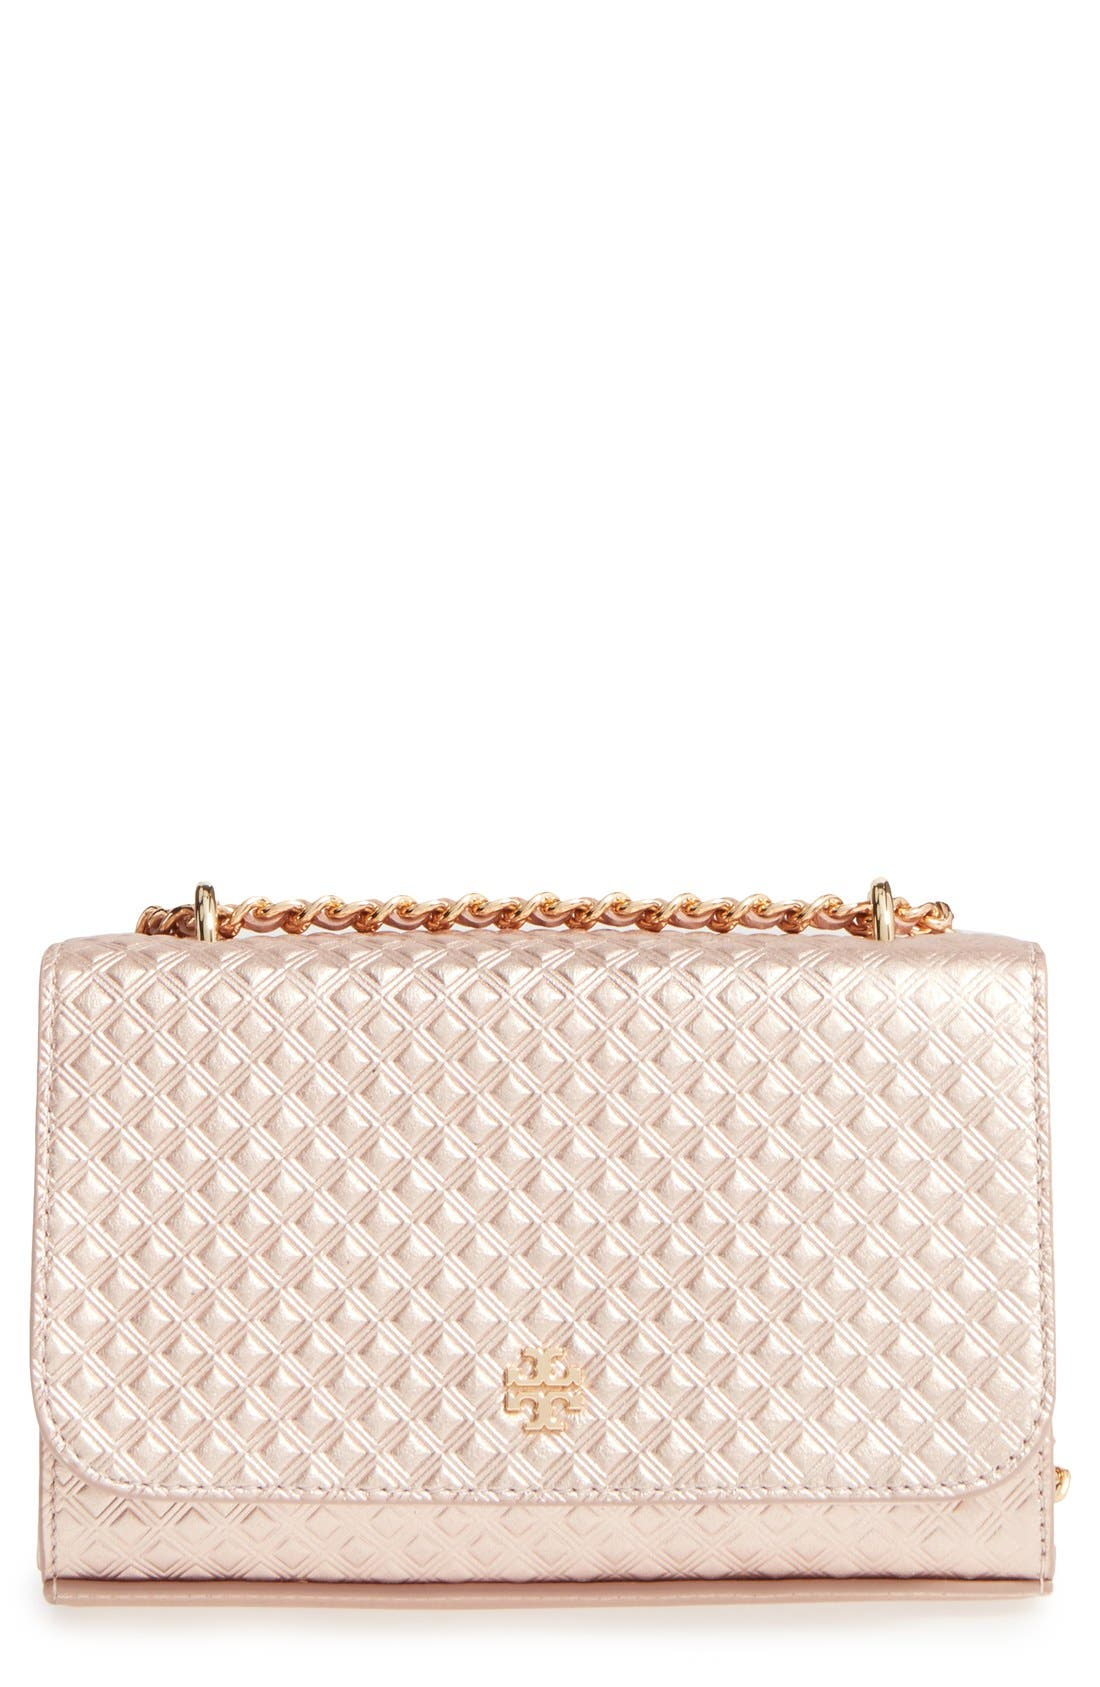 Main Image - Tory Burch Marion Embossed Leather Crossbody Bag